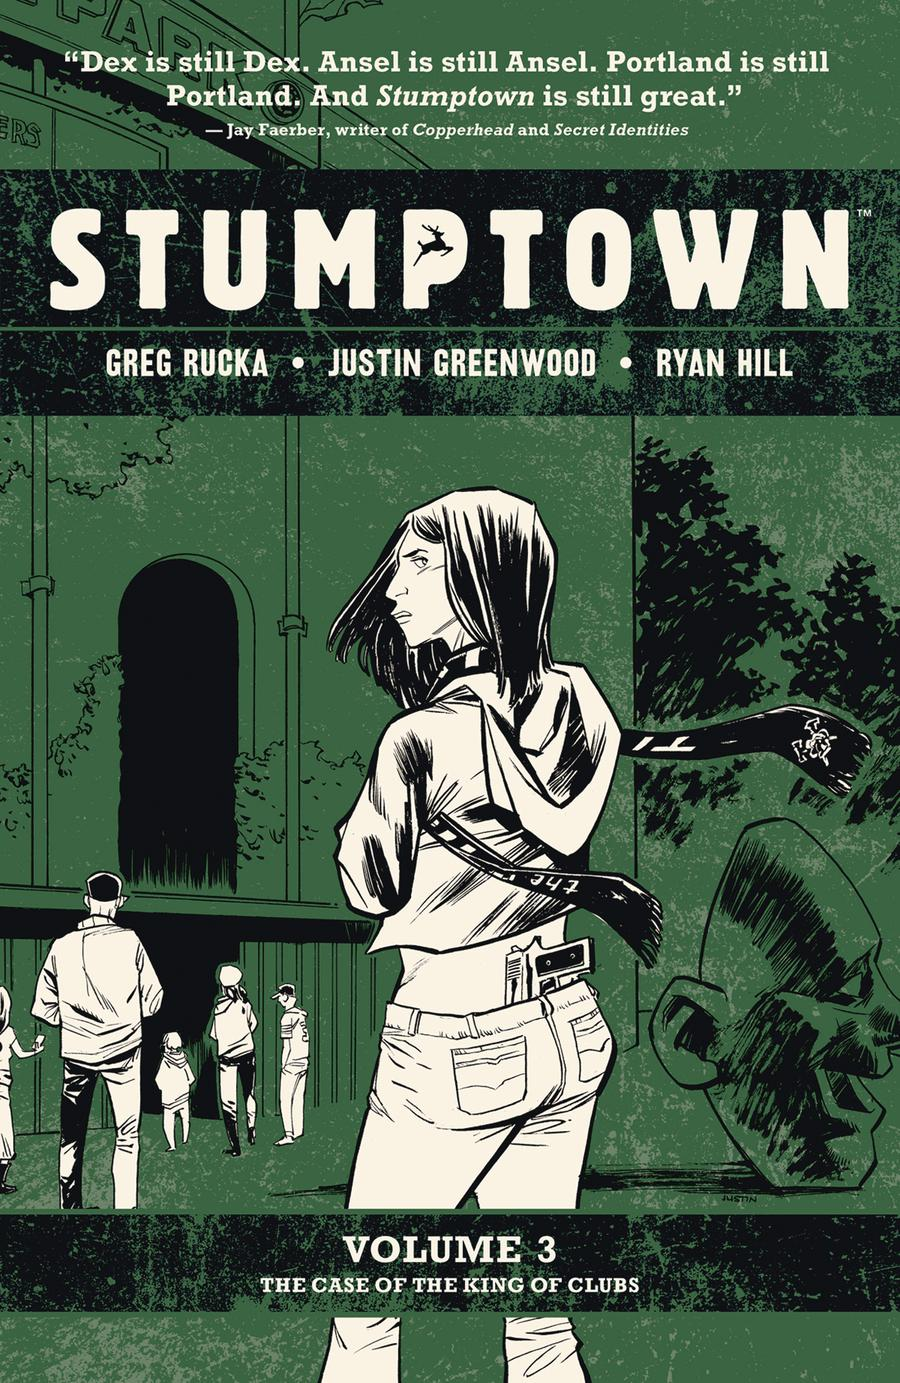 Stumptown Vol 3 Case Of The King Of Clubs TP